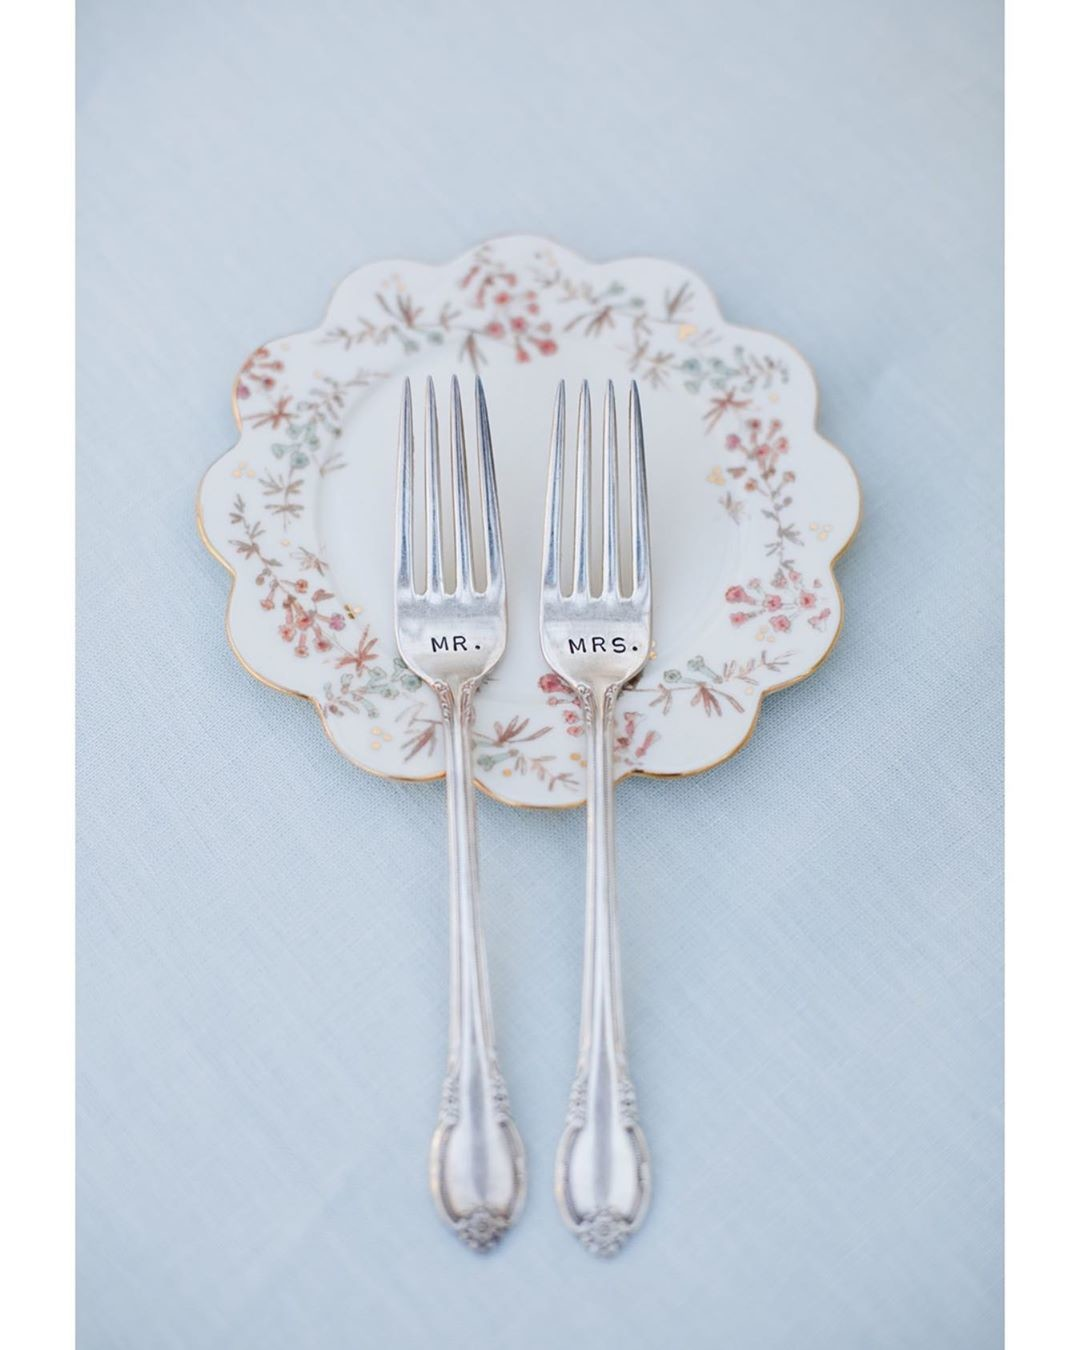 Love this sweet Mr. and Mrs. fork set for the couple to use when cake is served. Even the smallest detail counts on a wedding day